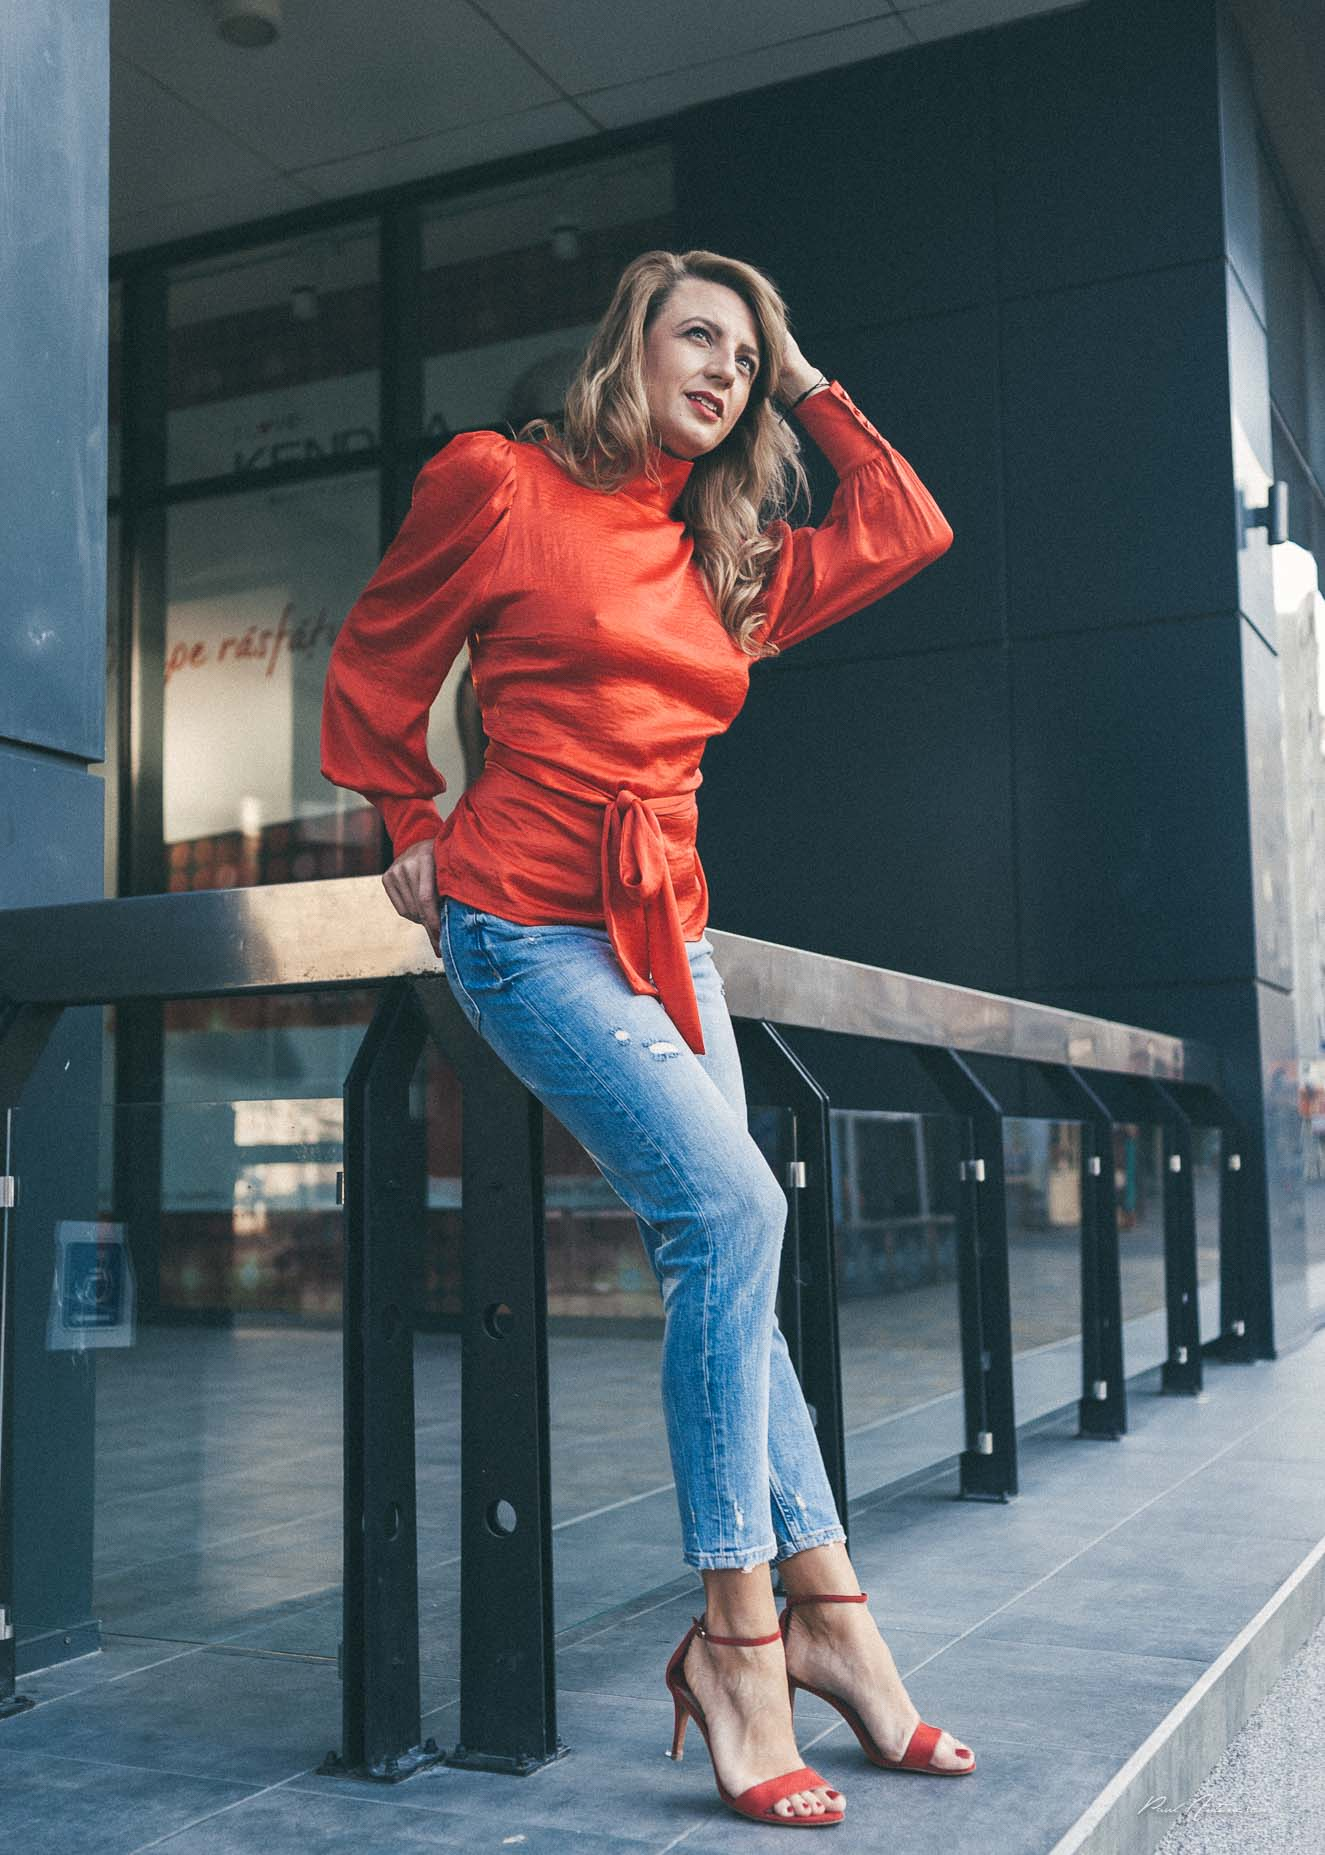 A pretty blonde girl wearing blue jeans, red fancy shoes and a red top posing for the camera in the city.